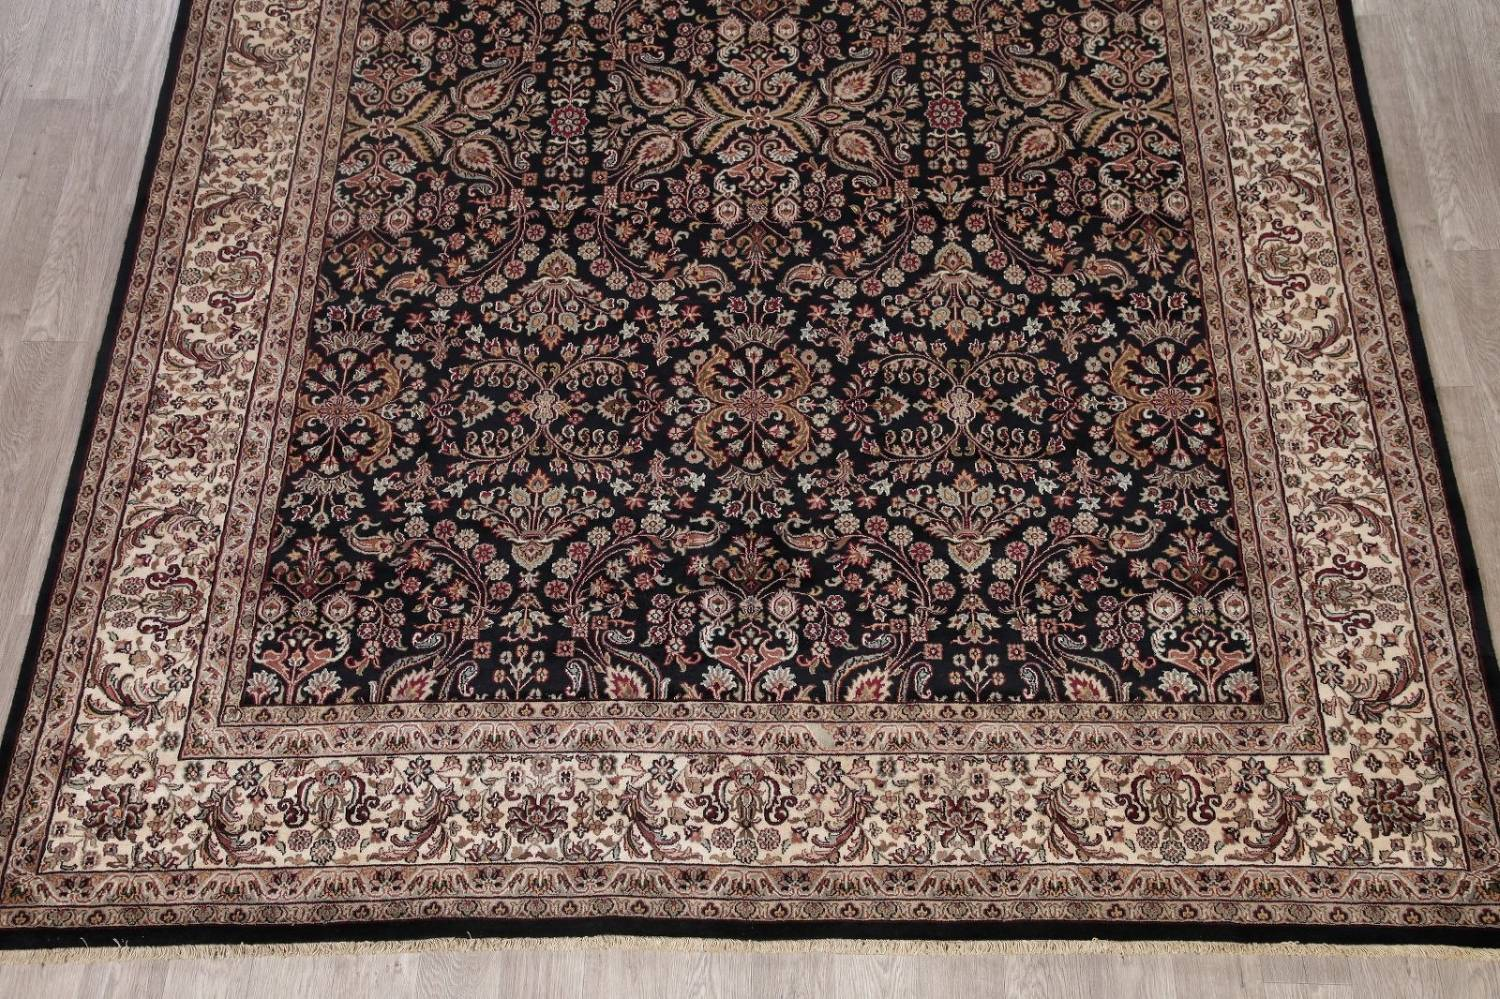 All-Over Black Floral Agra Oriental Wool Rug 9x12 image 8